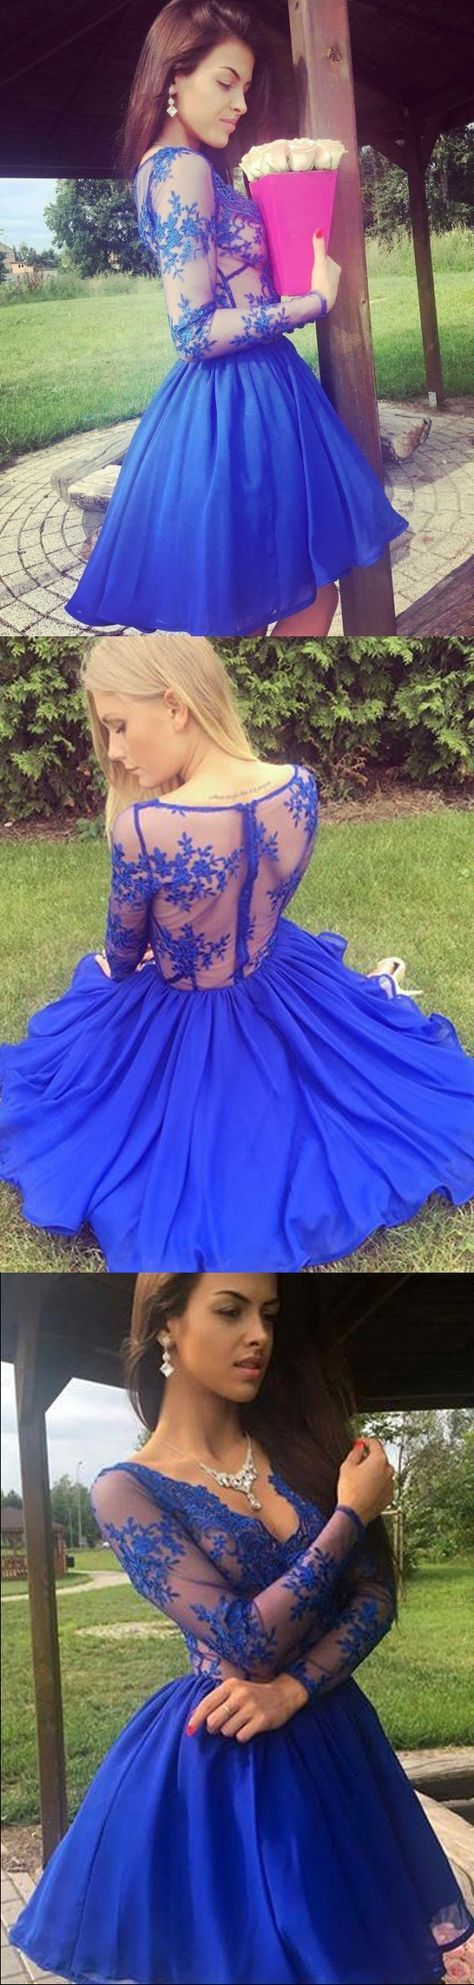 Royal Blue Homecoming Dress,homecoming dress A-line,homecoming dress V Neck,homecoming dress Appliques,homecoming dress Chiffon,Short Prom Dress,Party Dress #annapromdress #homecomingdress #homecoming #shortdress #shortpromdress #partydress #party #prom #fashion #style #dress